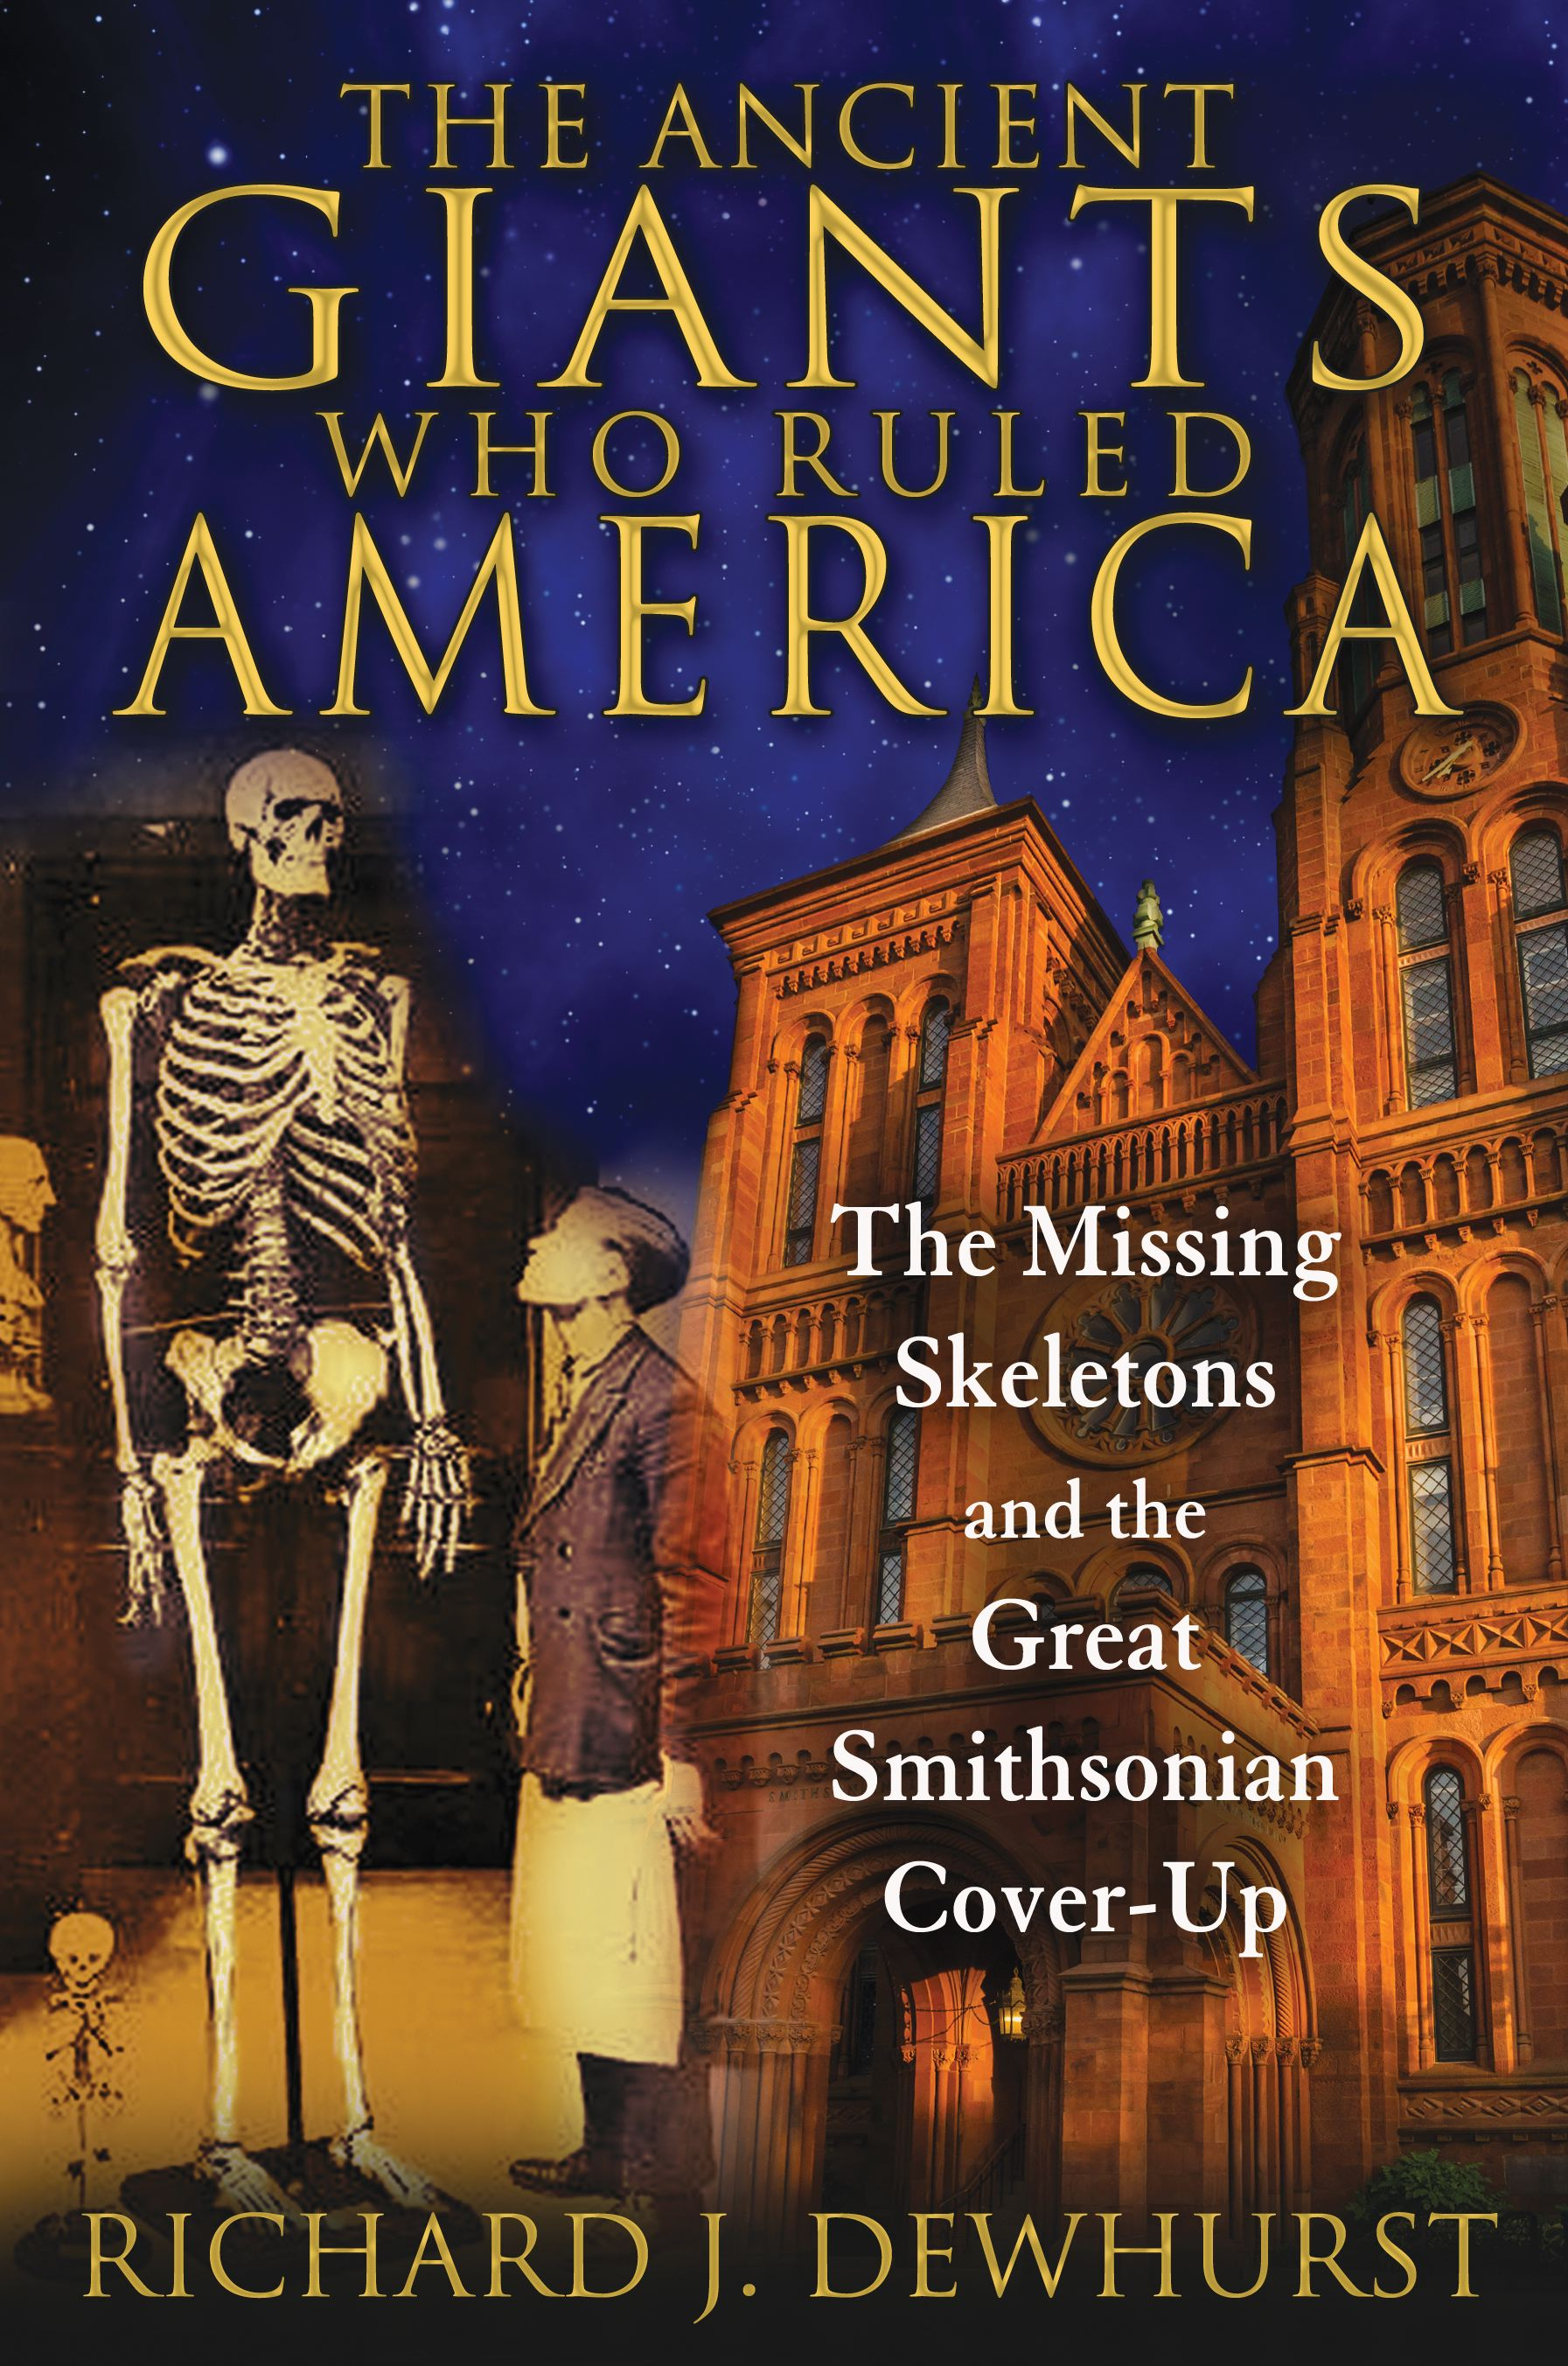 The-ancient-giants-who-ruled-america-9781591431718_hr